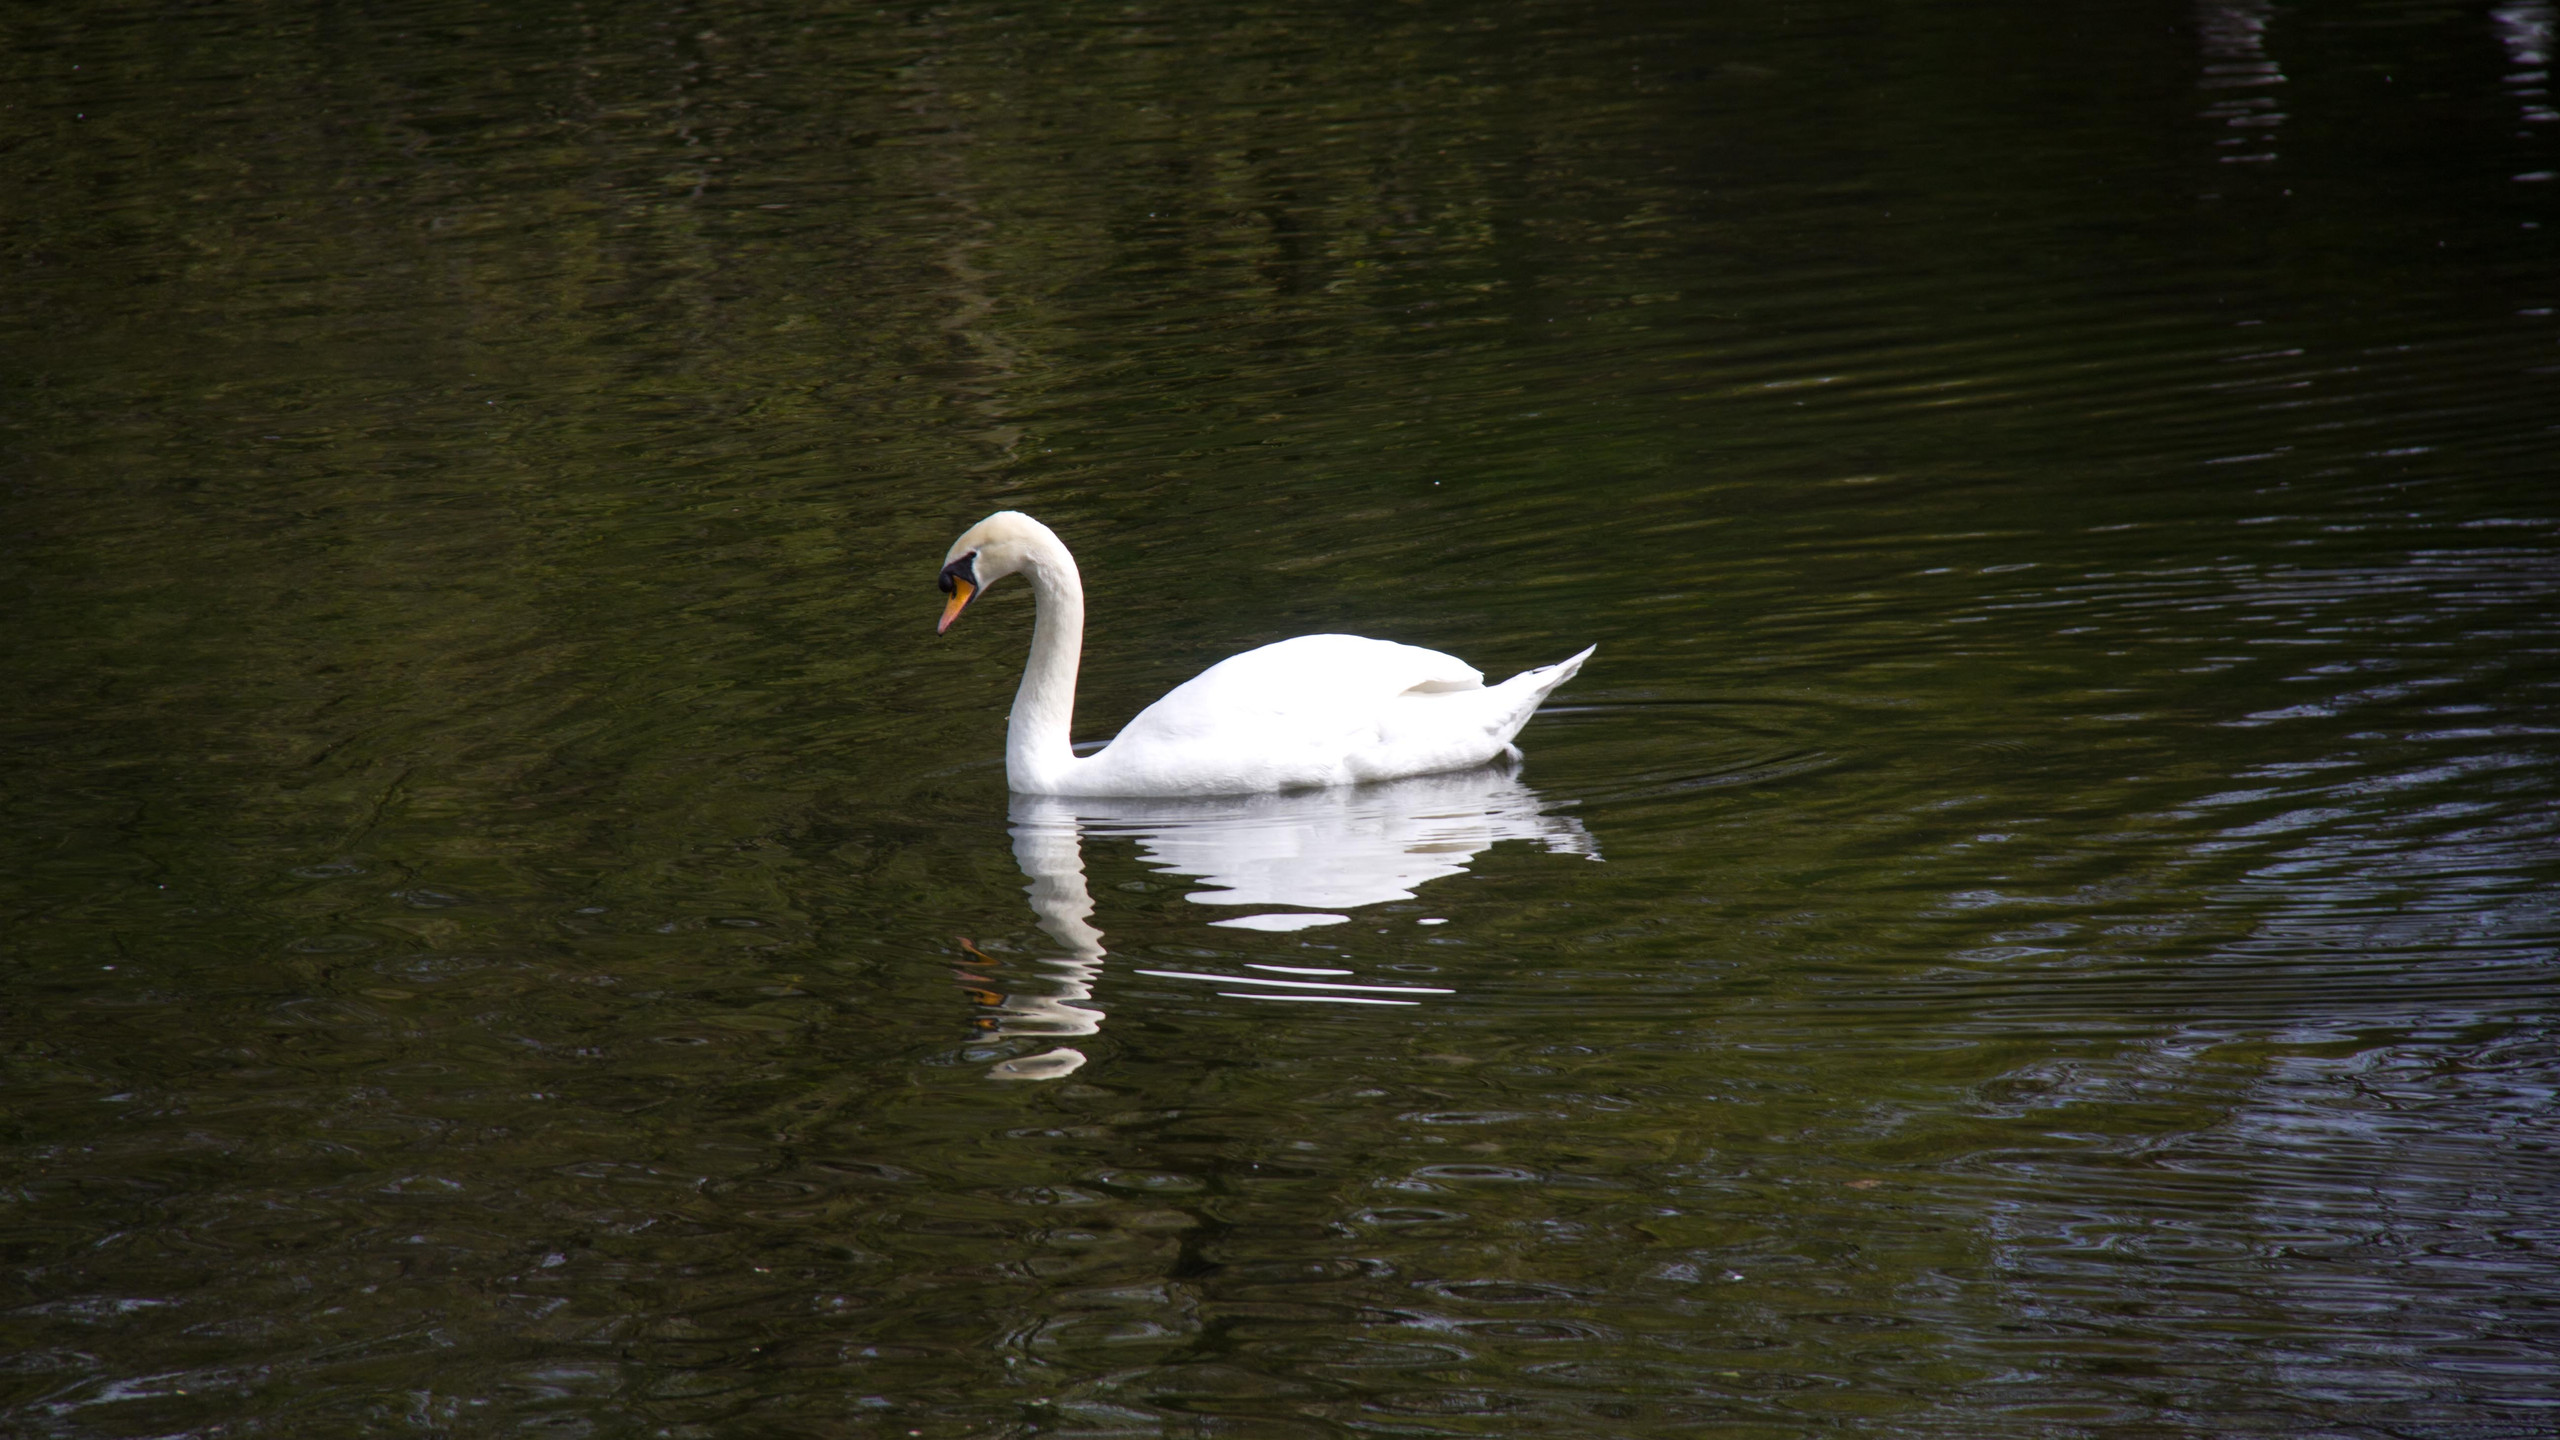 Swans of St. Stephens Green